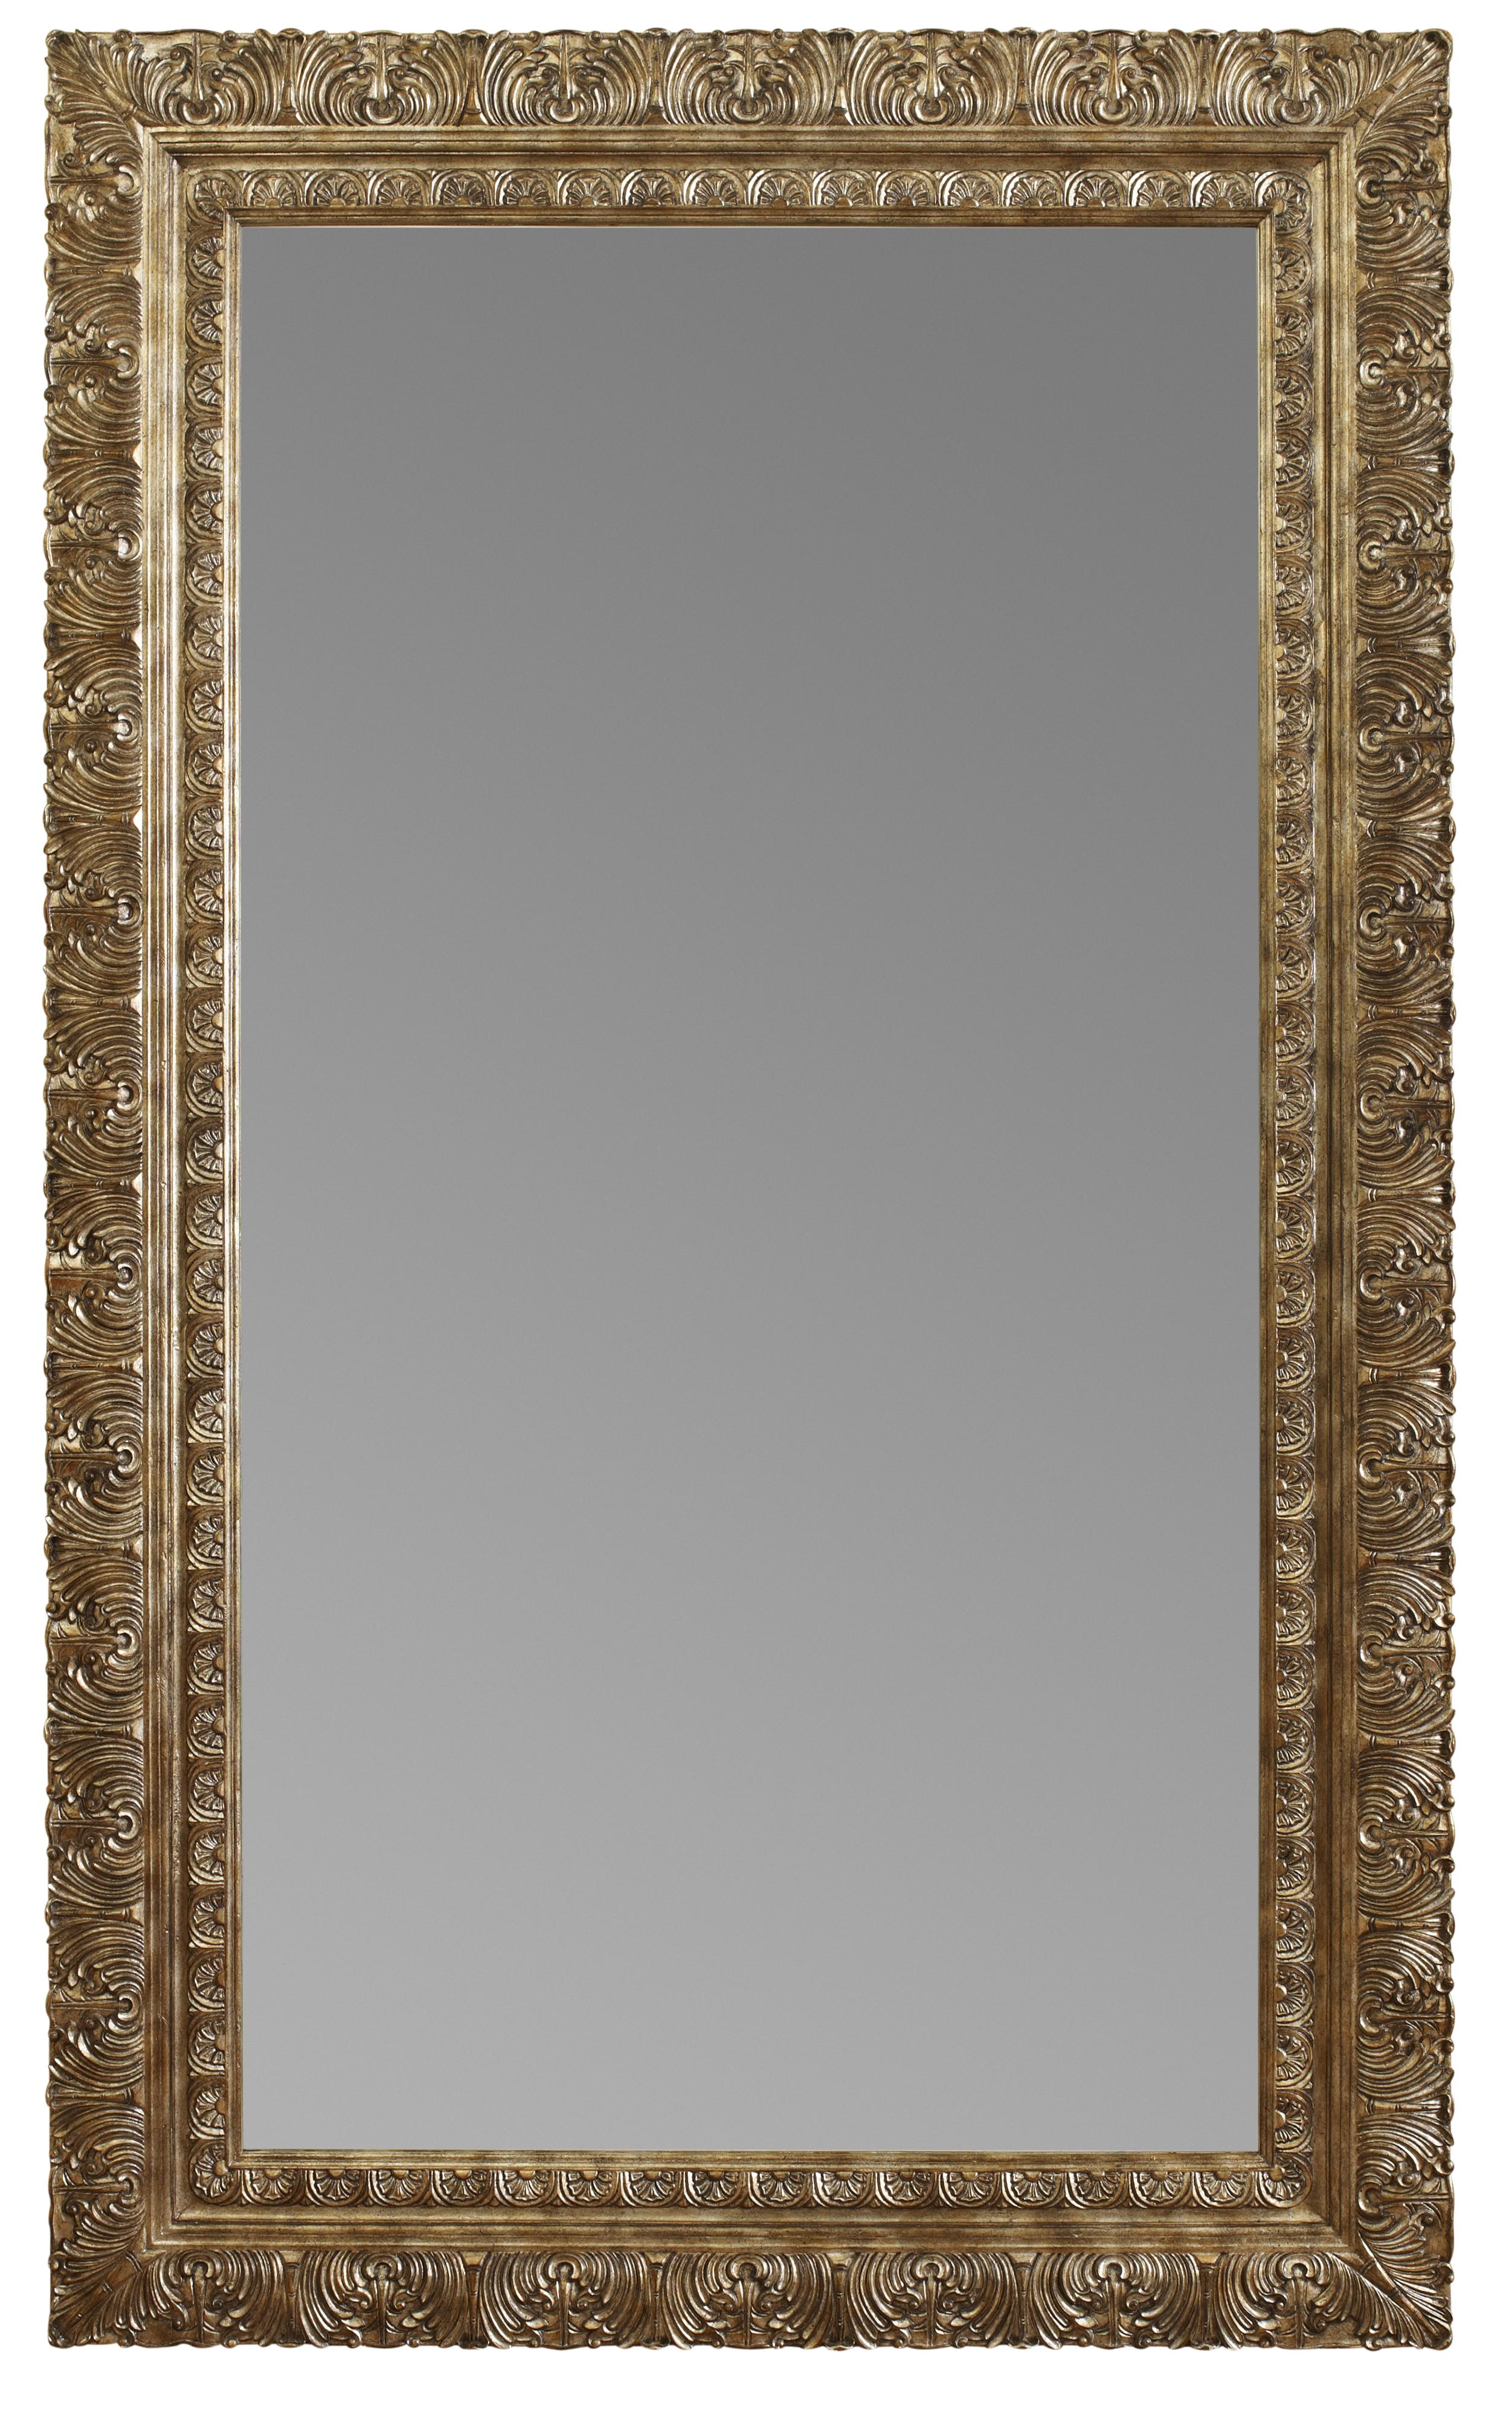 Creative floor length mirrors ornate ornament mirror frame can be place at your beautiful bedroom Ideas